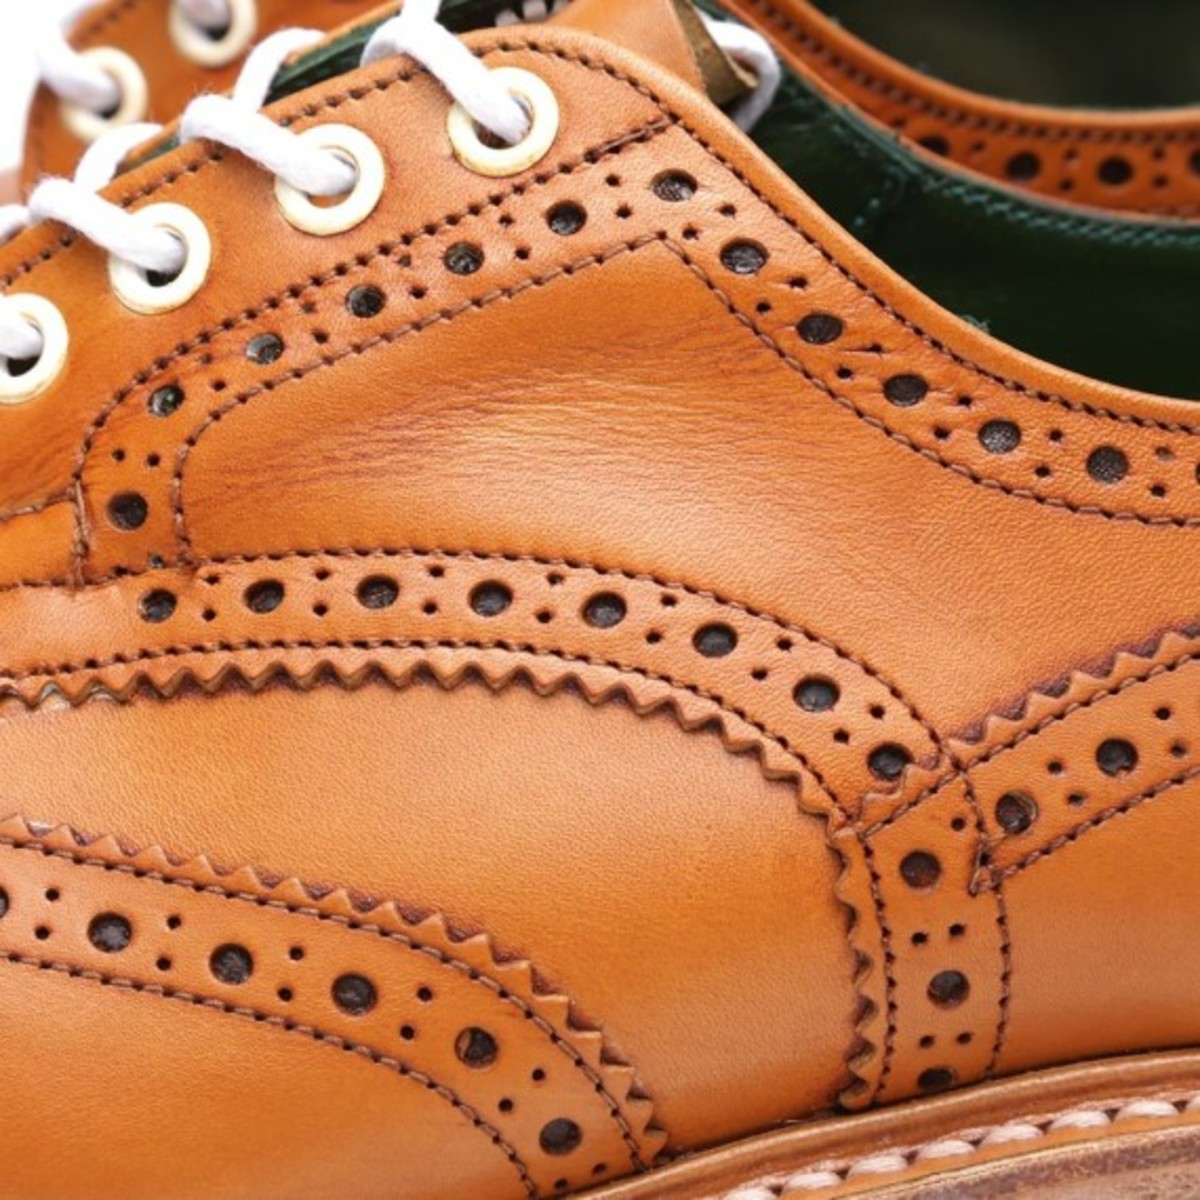 end-x-trickers-bourton-derby-brogue-autumnal-pack-Acorn-Antique-Leather-06